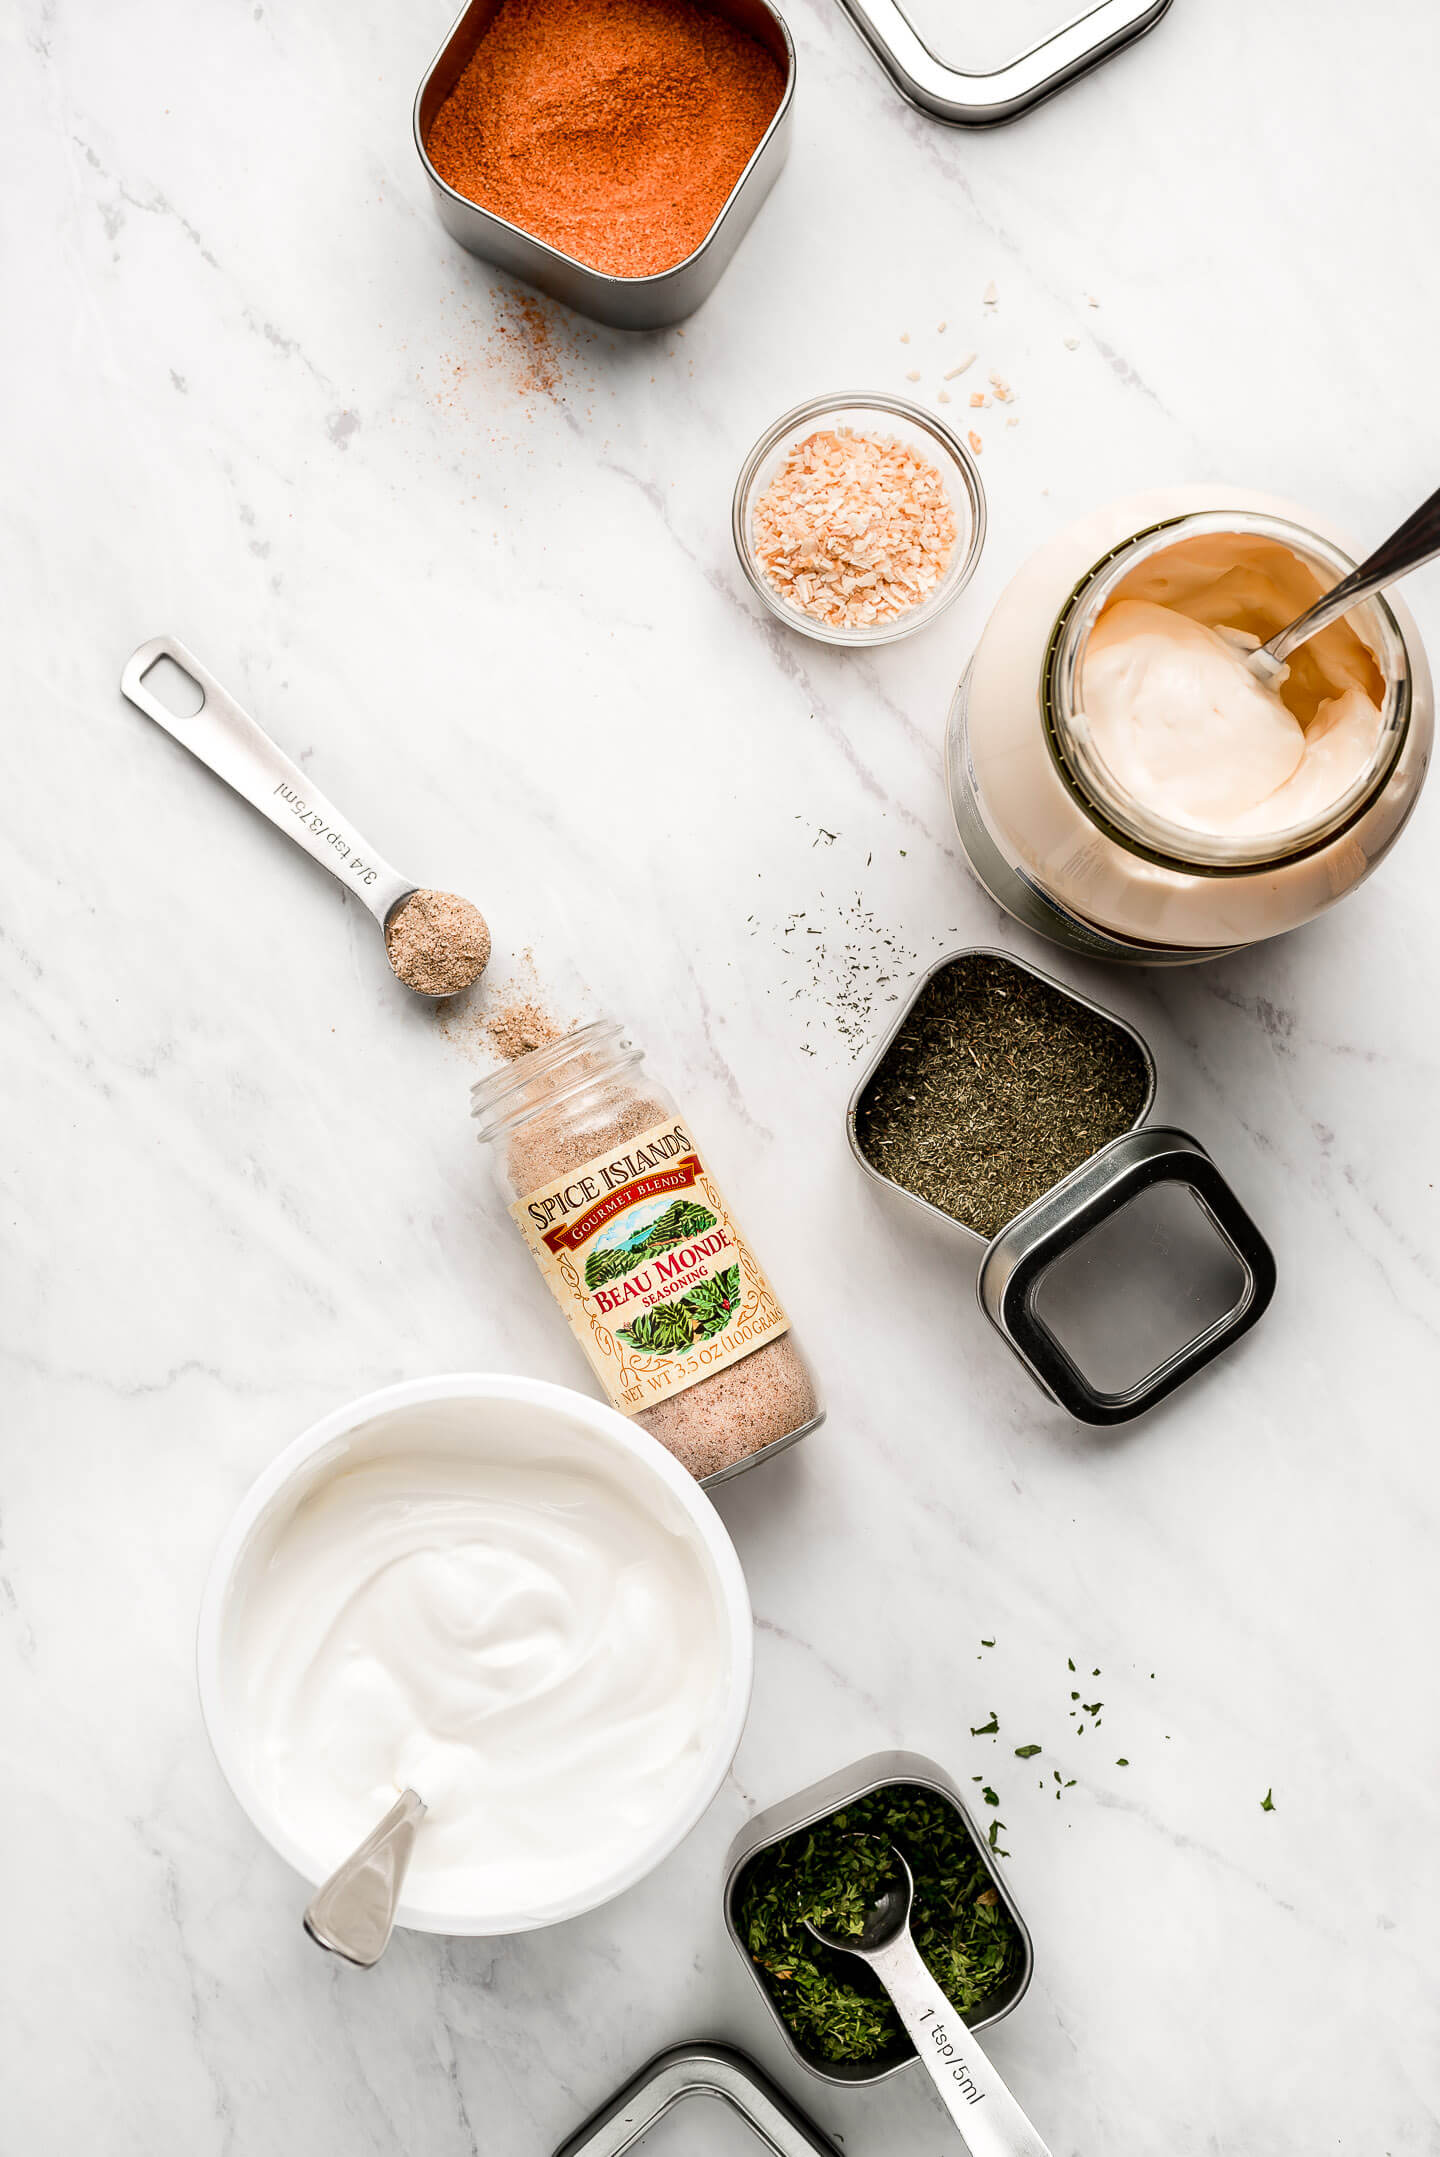 Ingredients on a marble surface- spices, herbs, mayo, and sour cream.